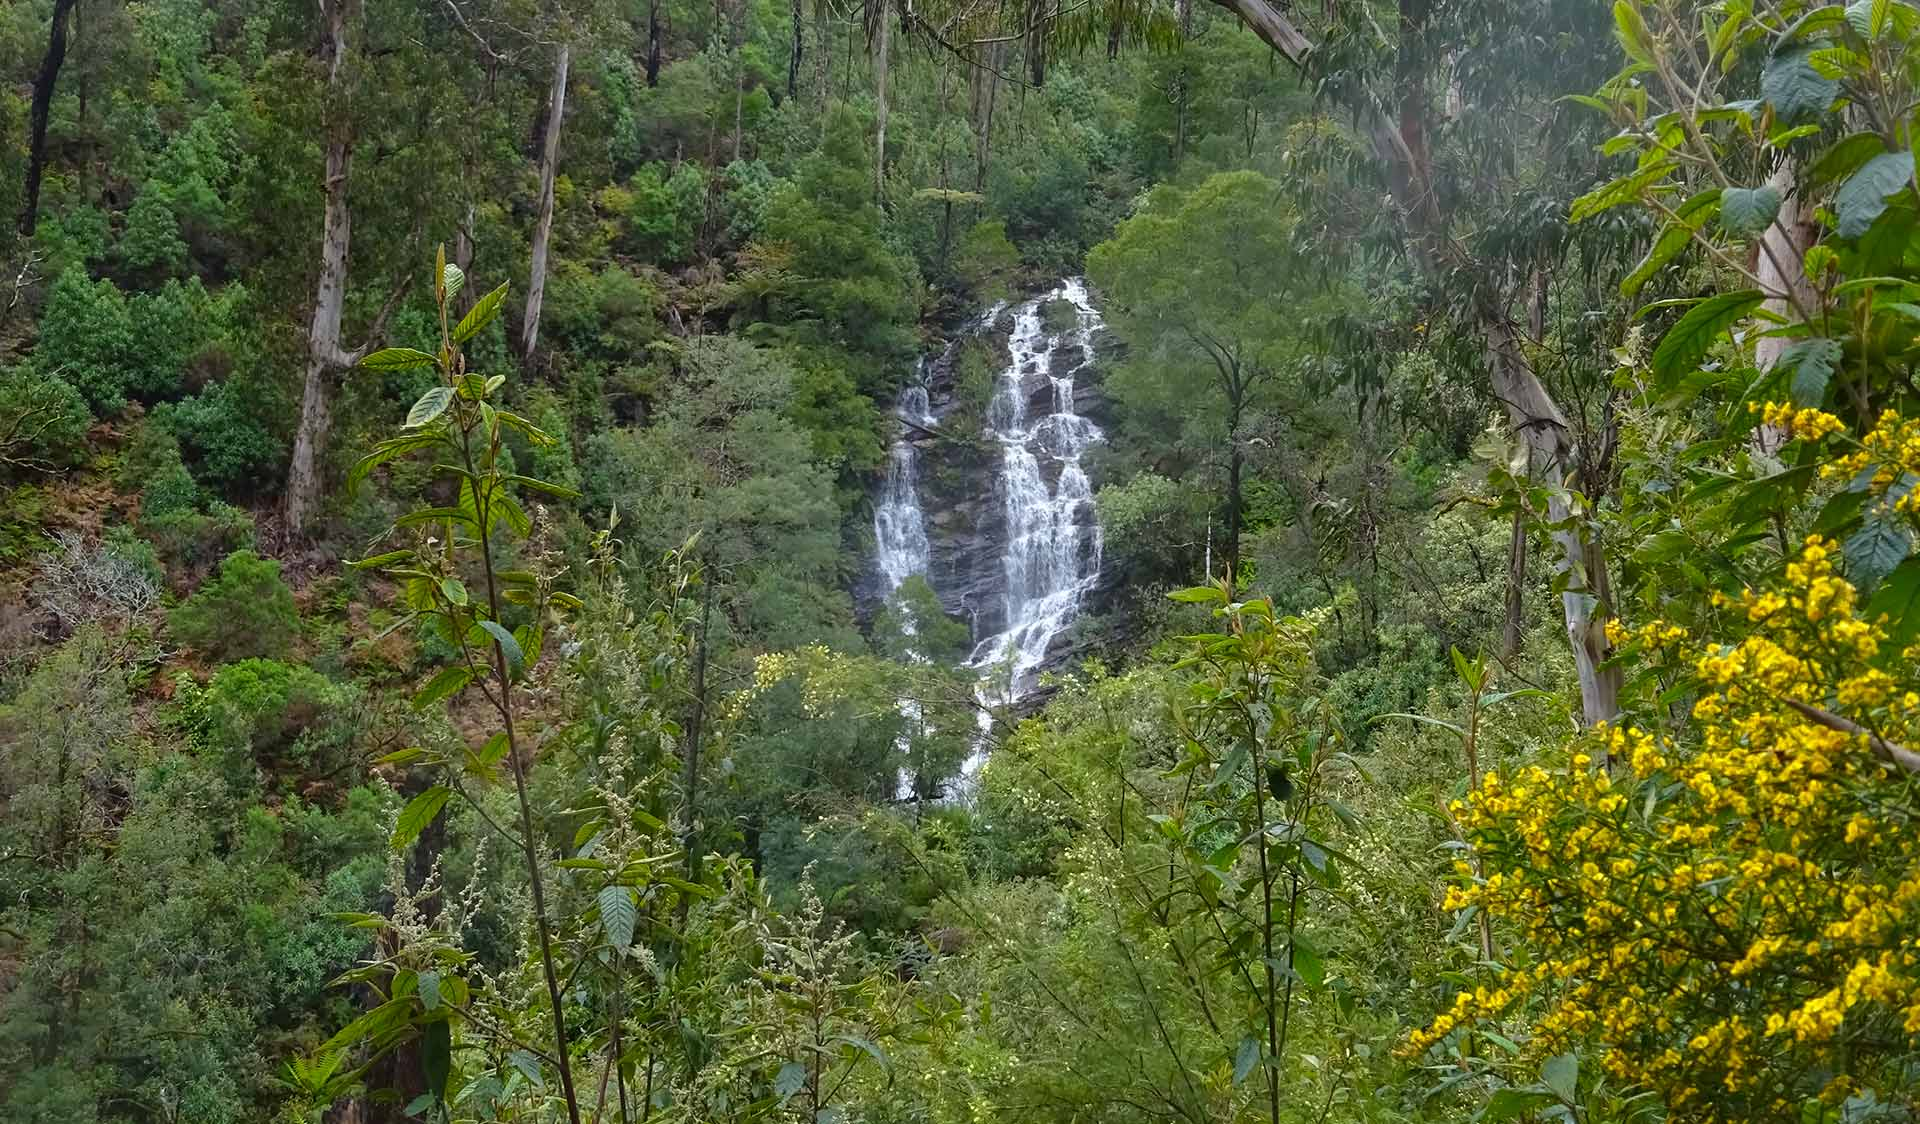 Wombelano Falls in the Kinglake National Park